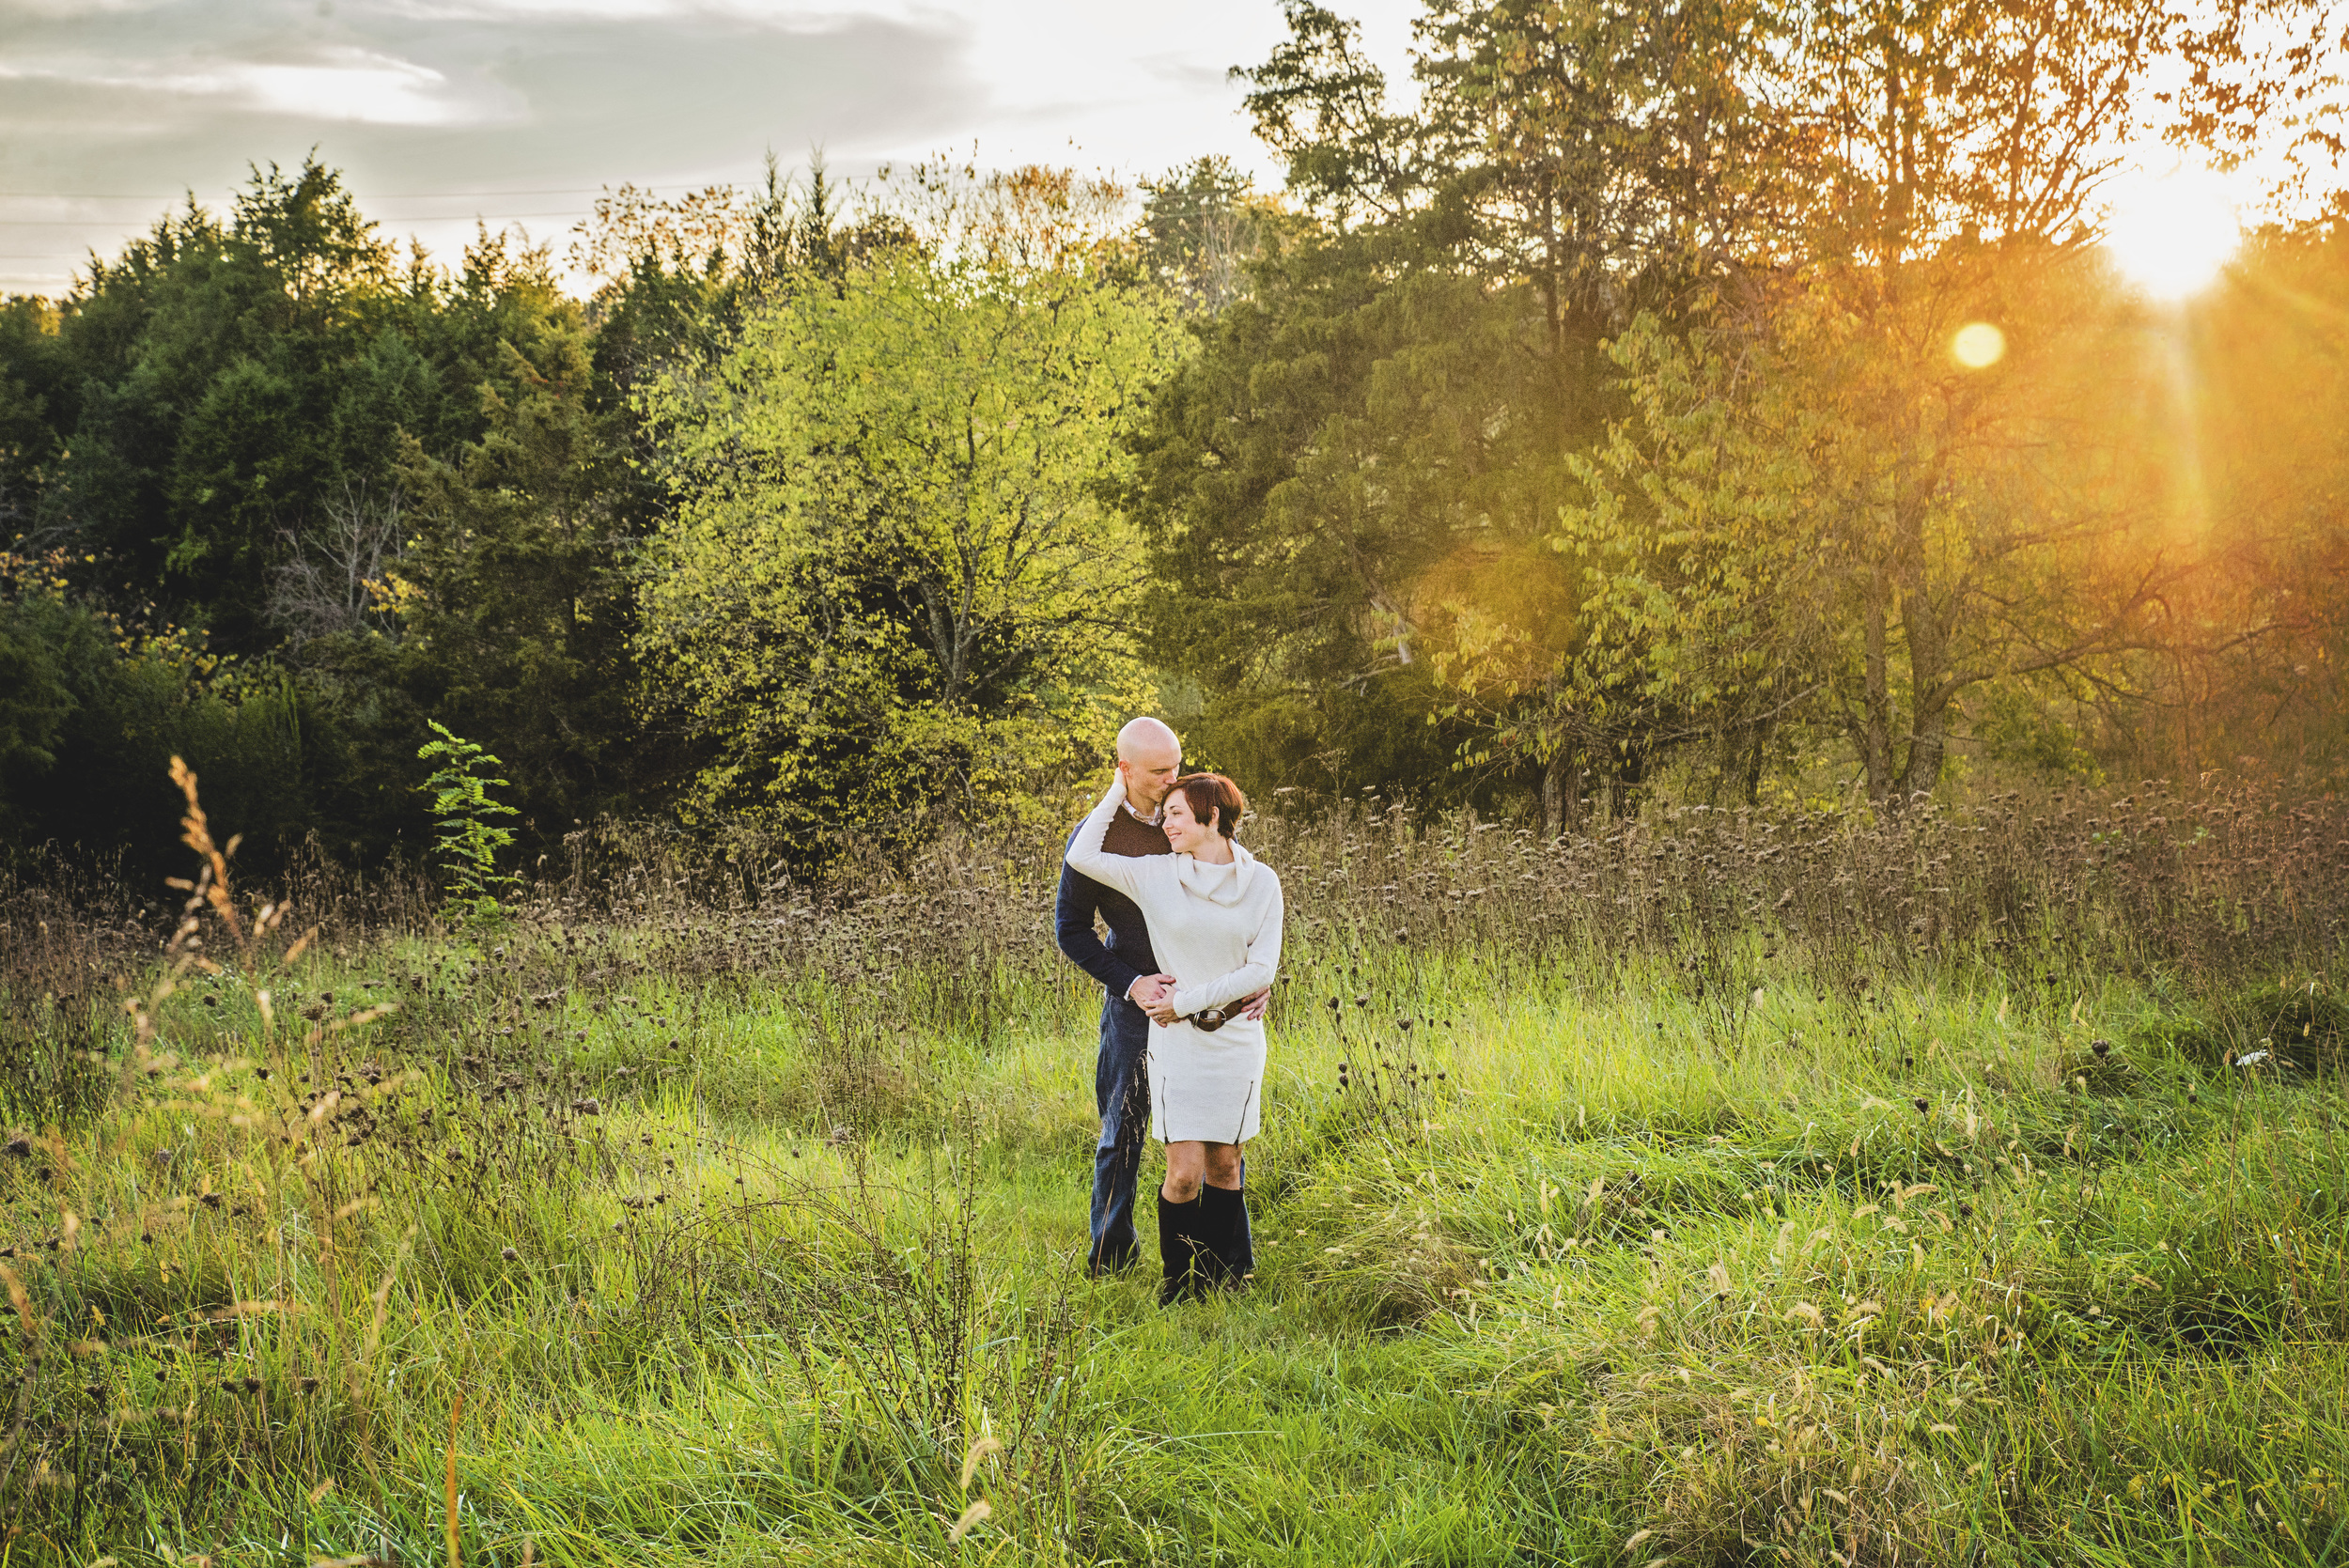 romantic_fall_field_engagement_session_lynchburg_va018.jpg